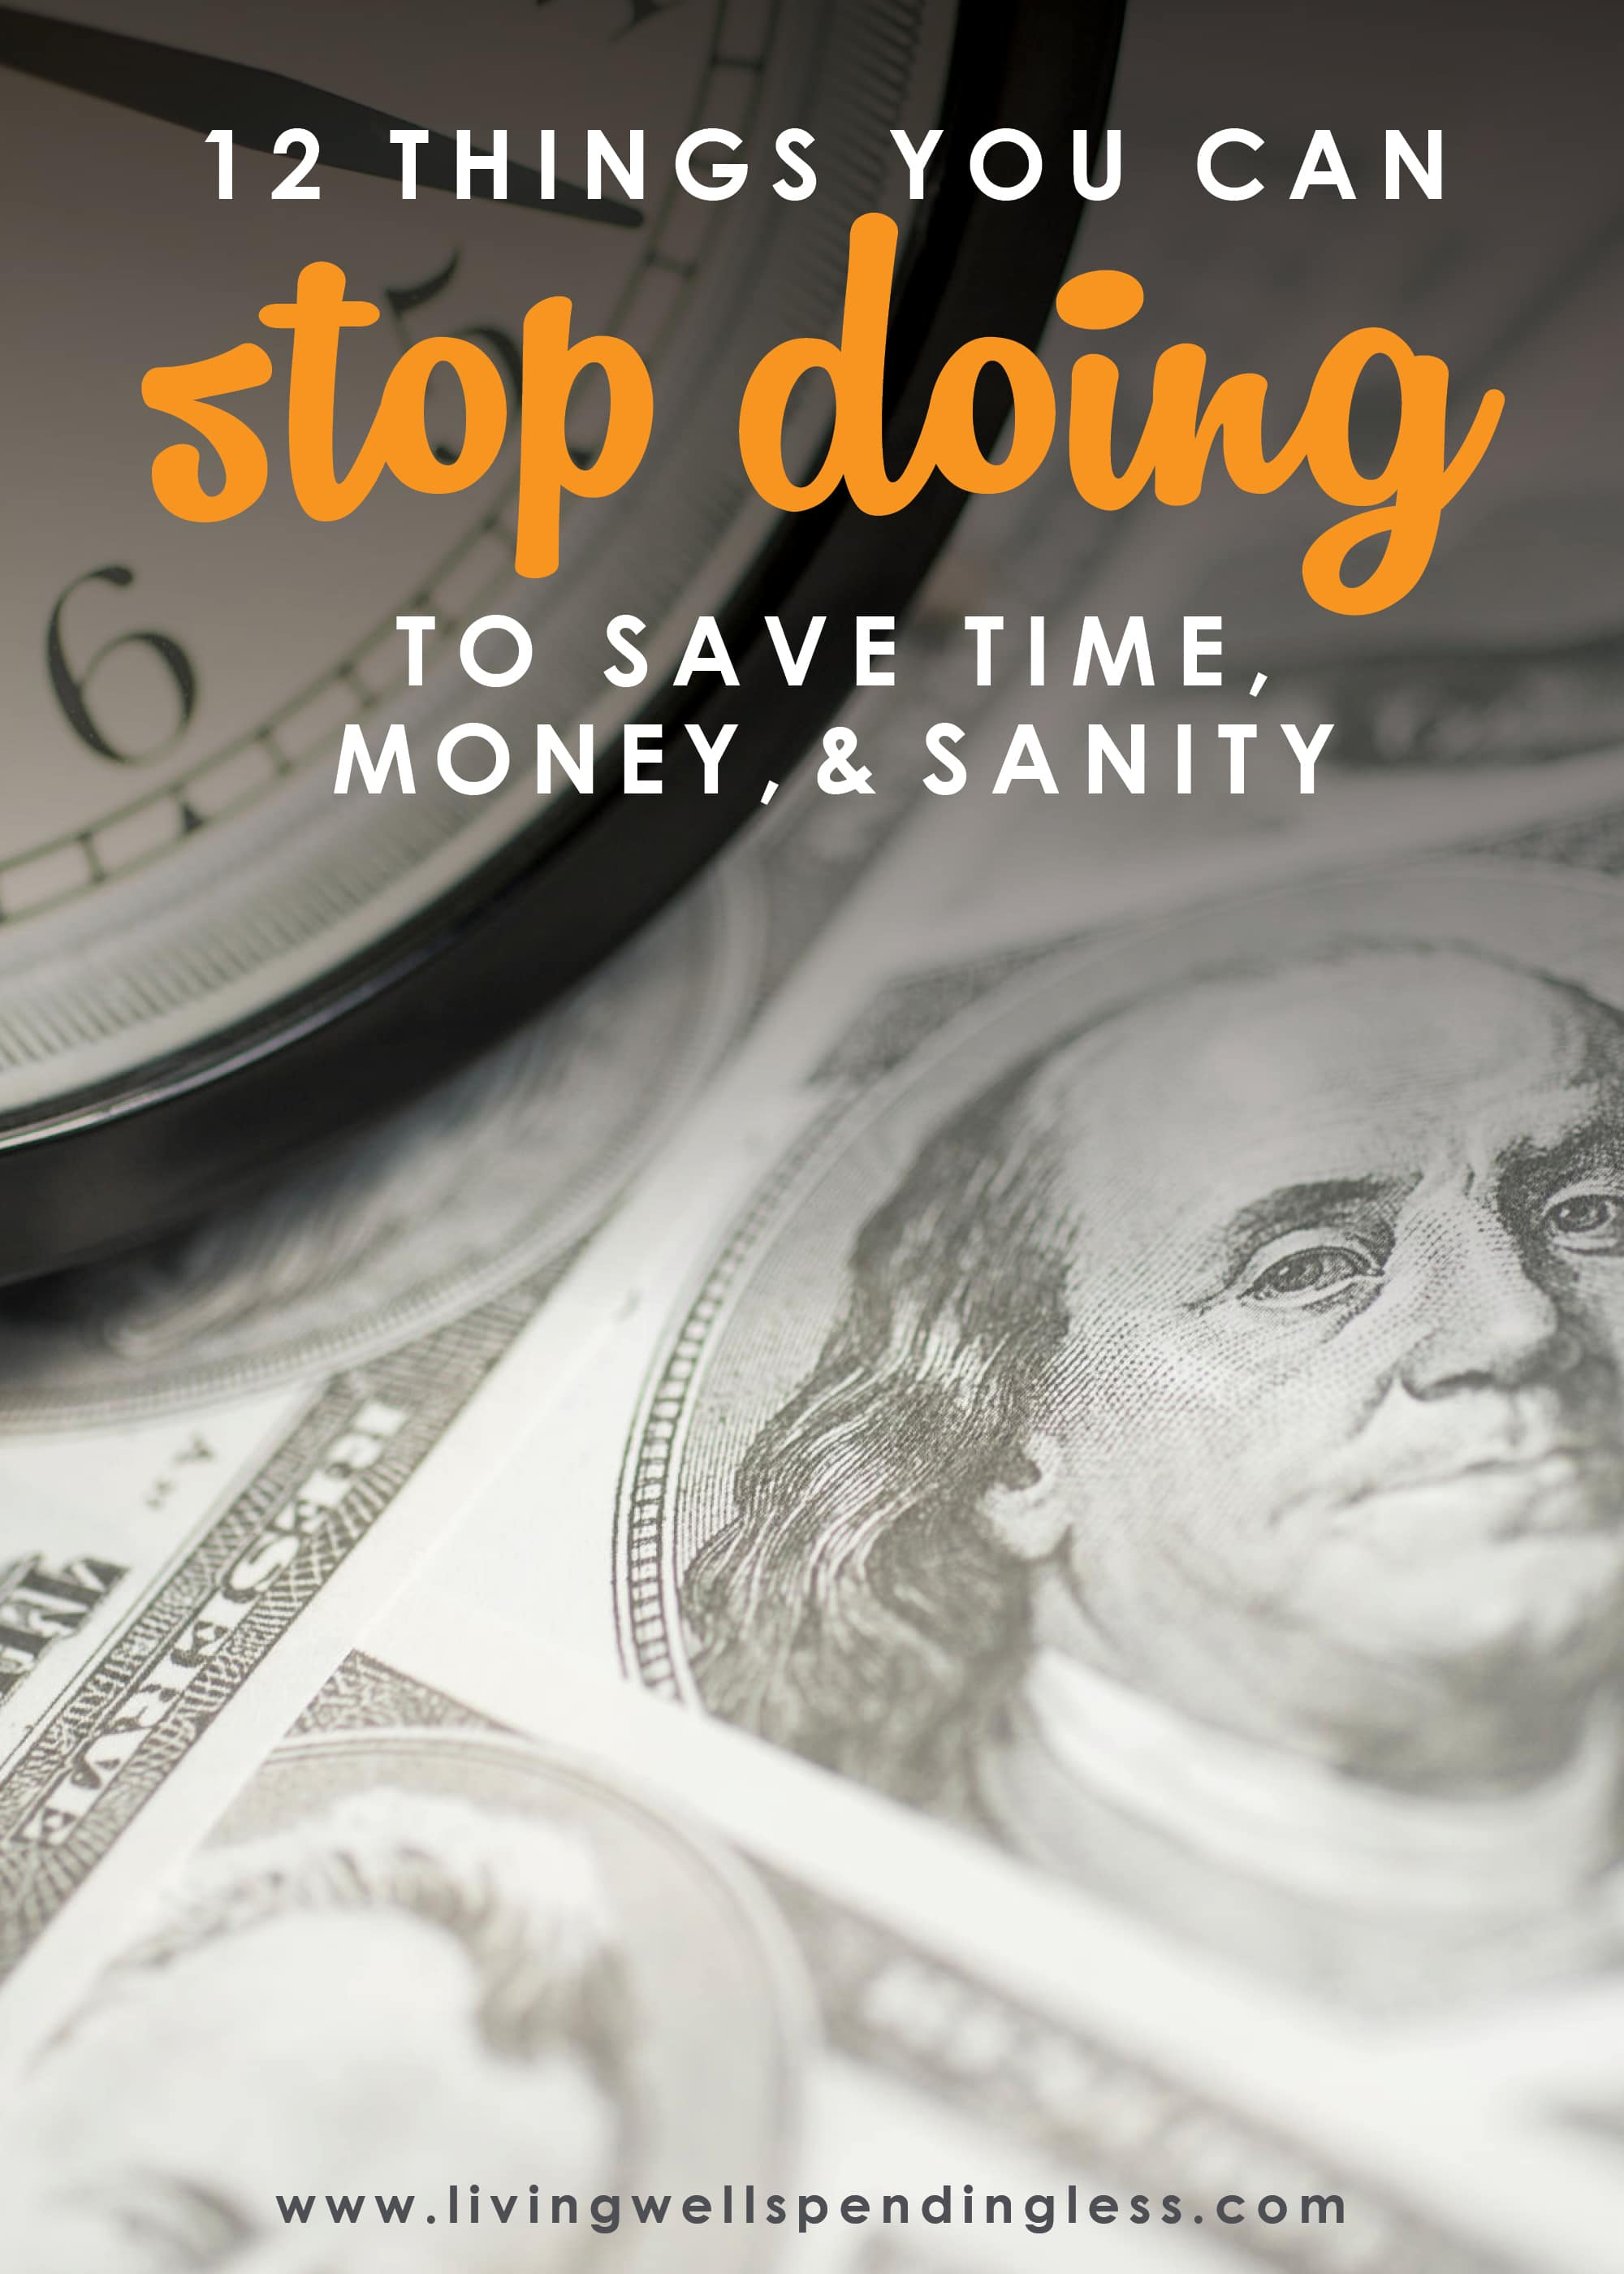 We often spend a lot of time talking about the things we should do to save time & money, but have you ever given any thought to what things NOT to do? These are the 12 things I DON'T do to save time, money, & sanity--what are yours?